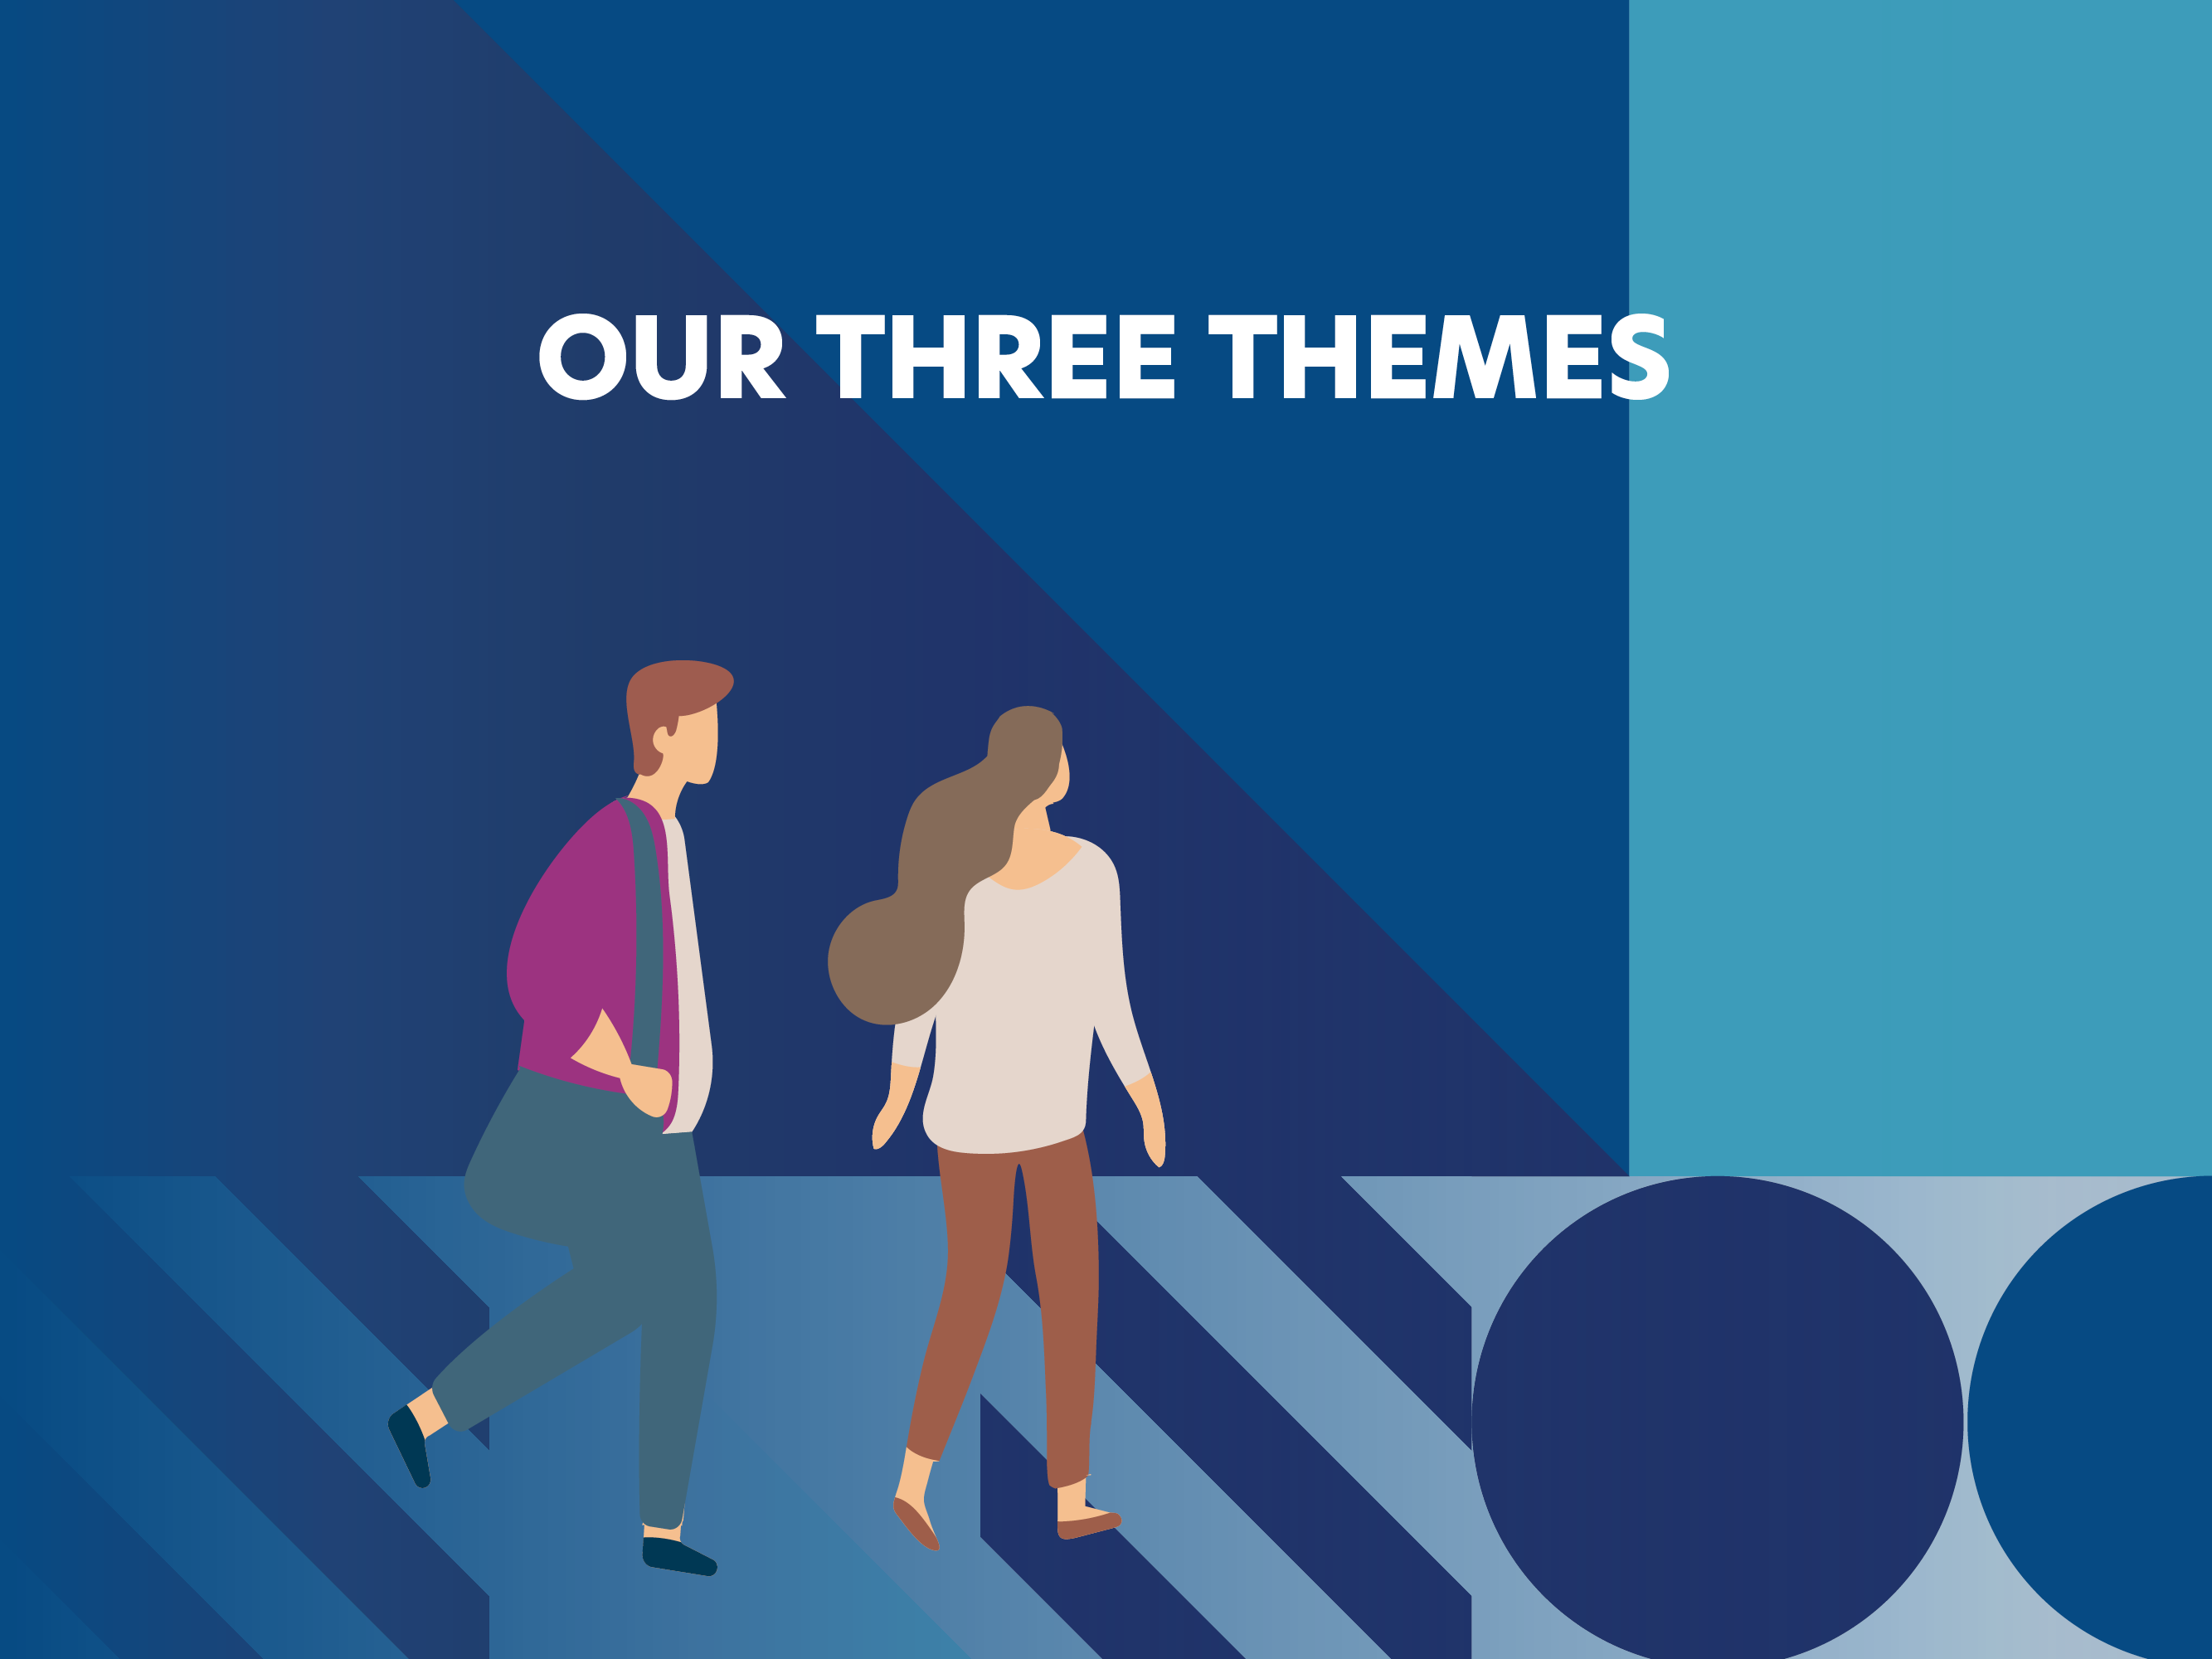 Our Three Themes